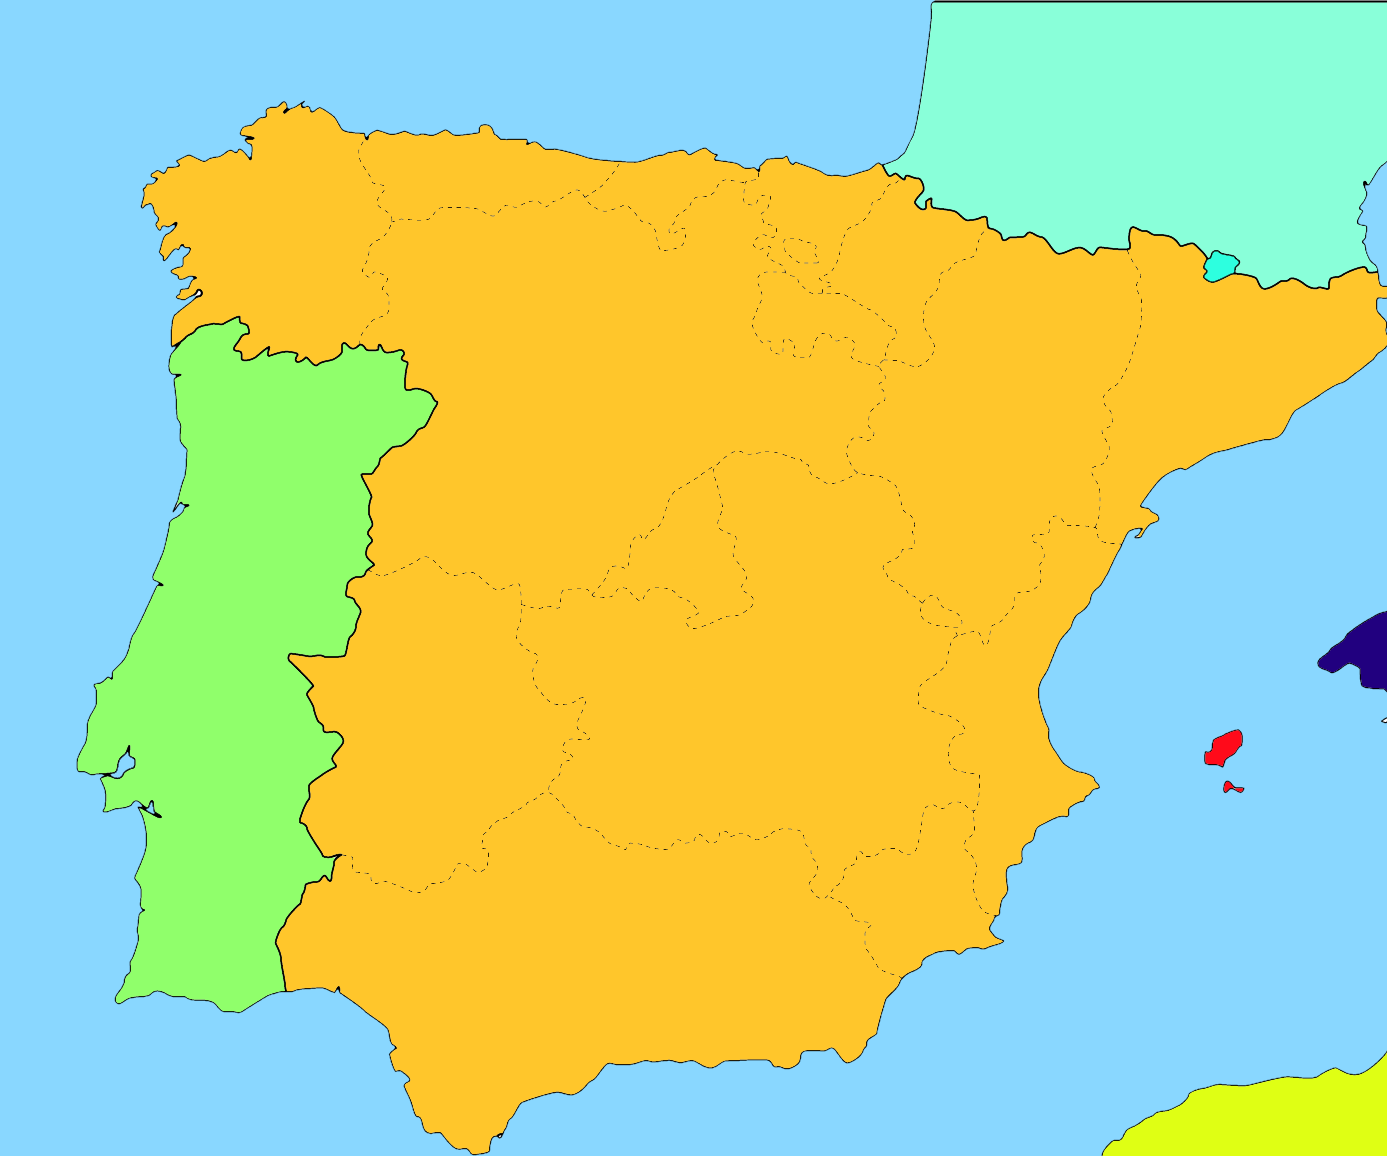 Loyalist Republic of Spain (Communist Spain)